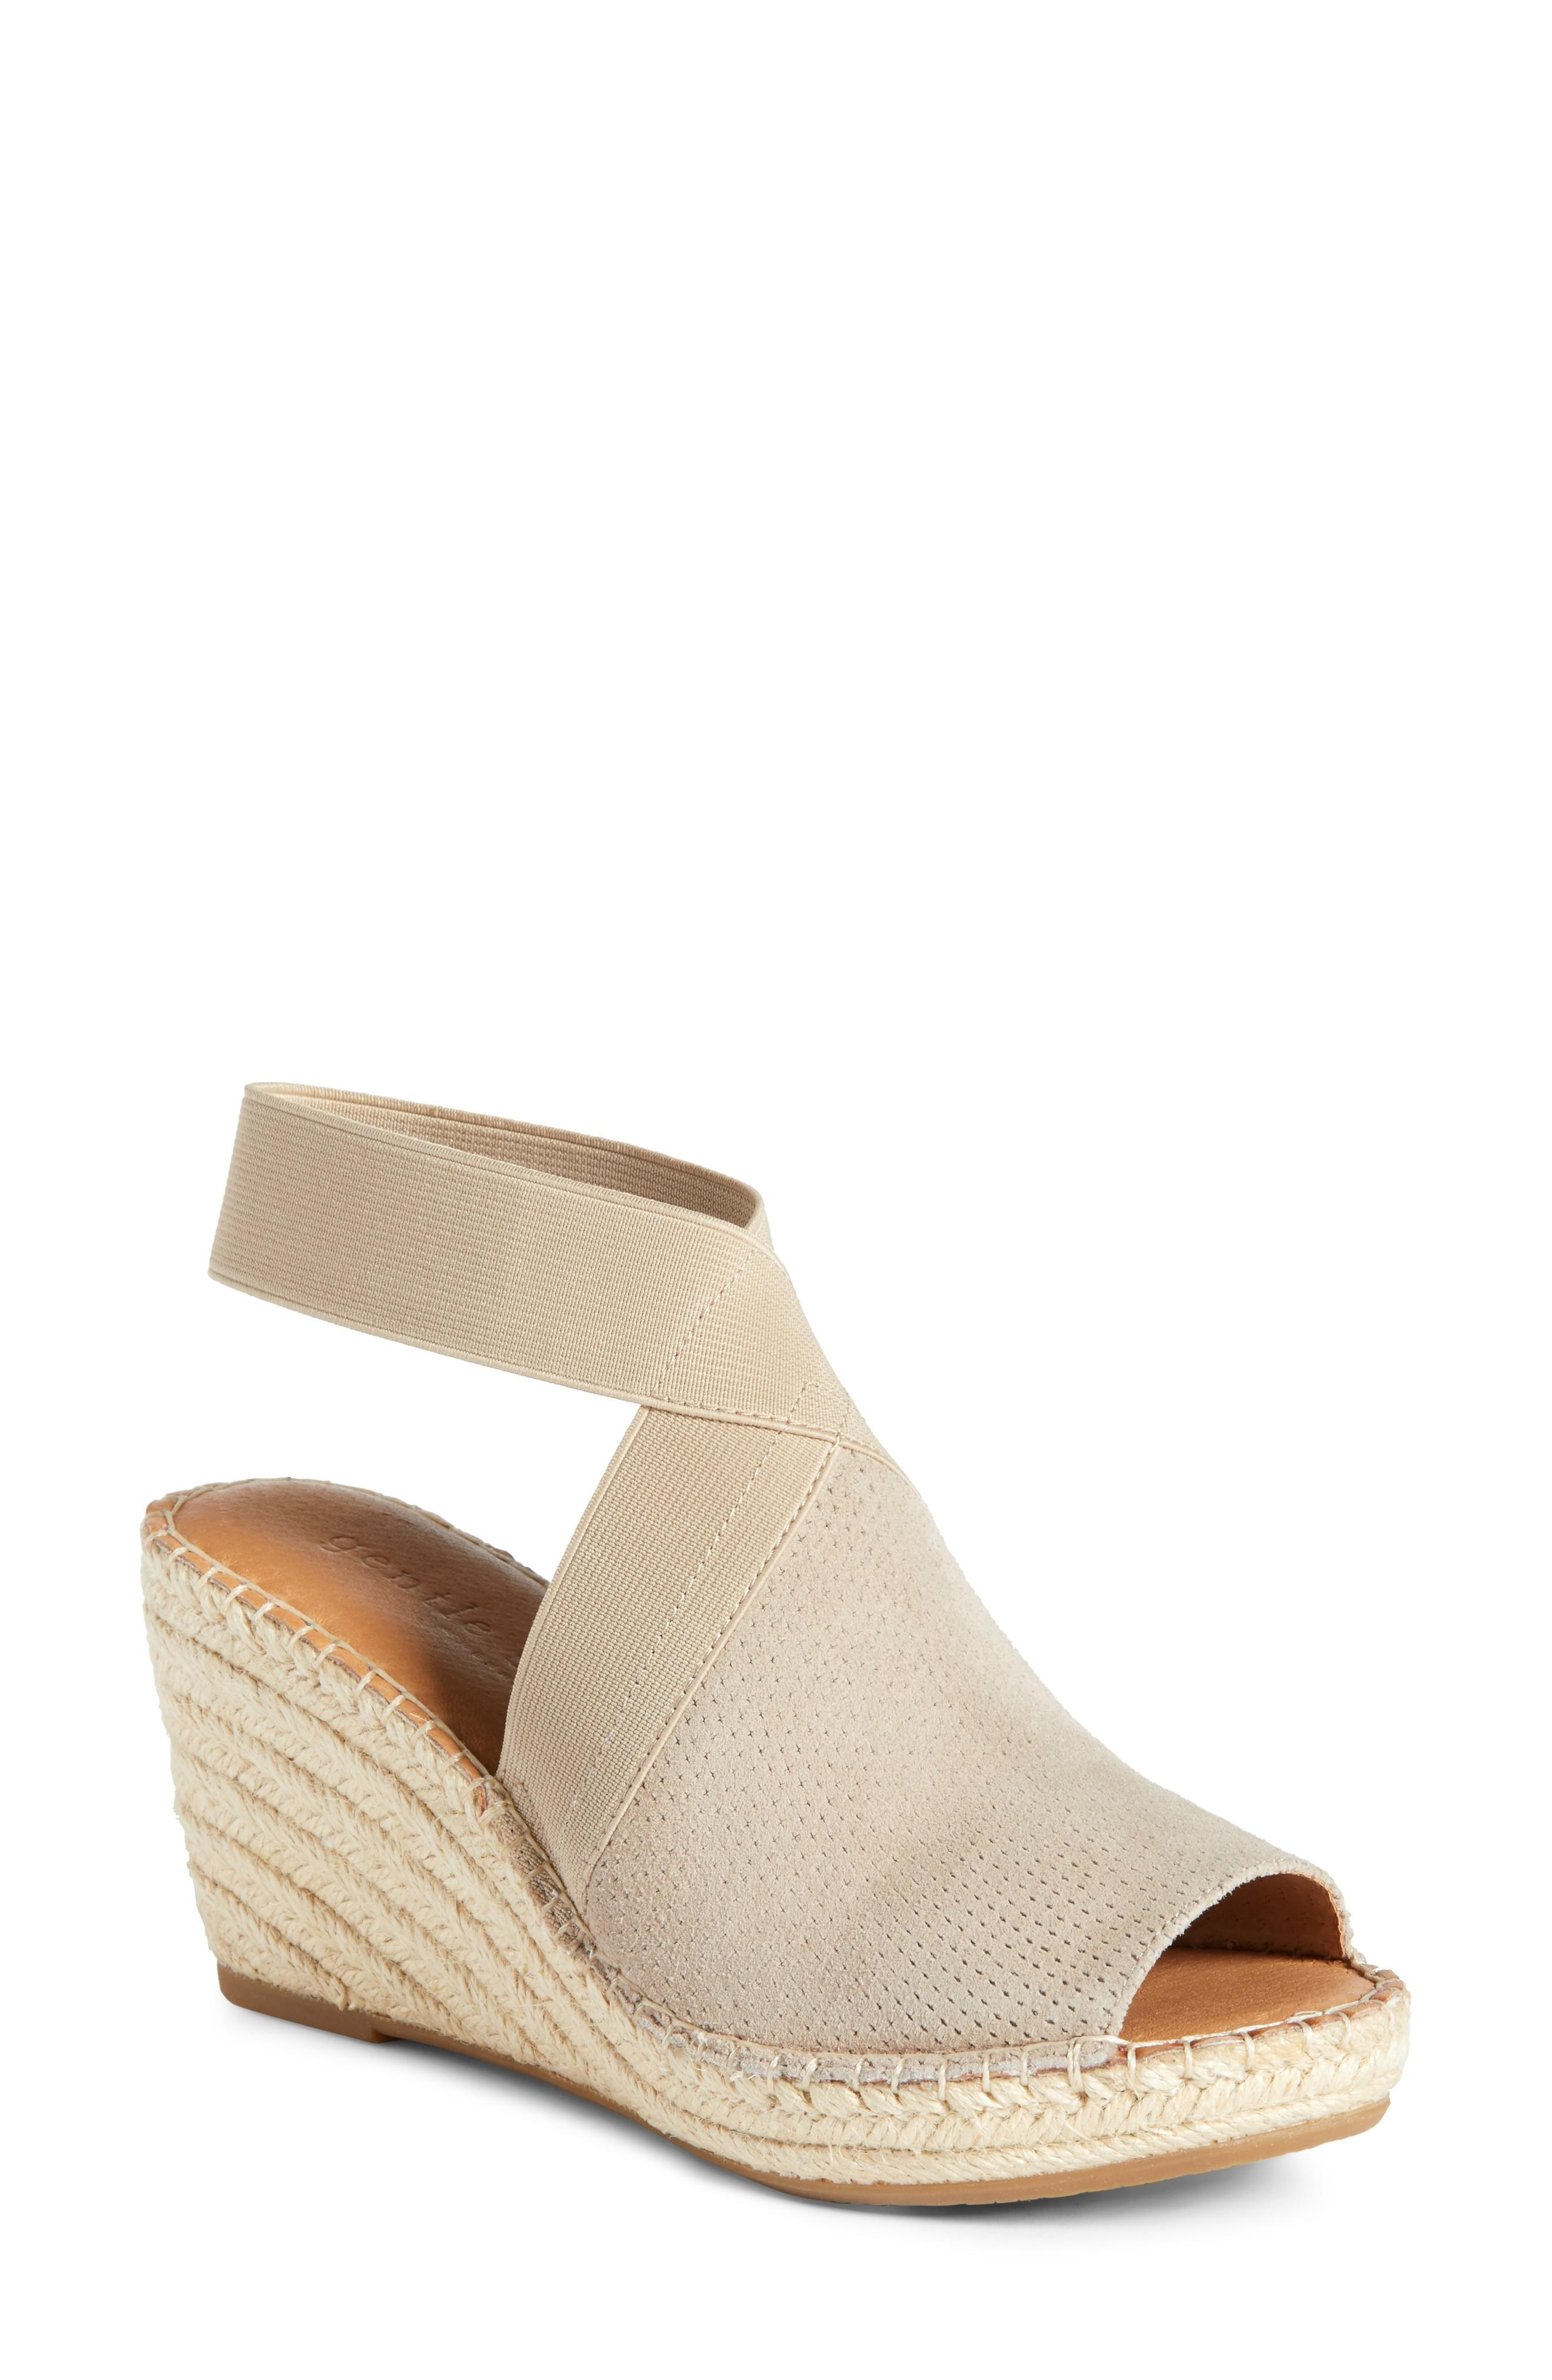 45b323d8c68 By Kenneth Cole Colleen Espadrille Wedge in Mushroom Suede